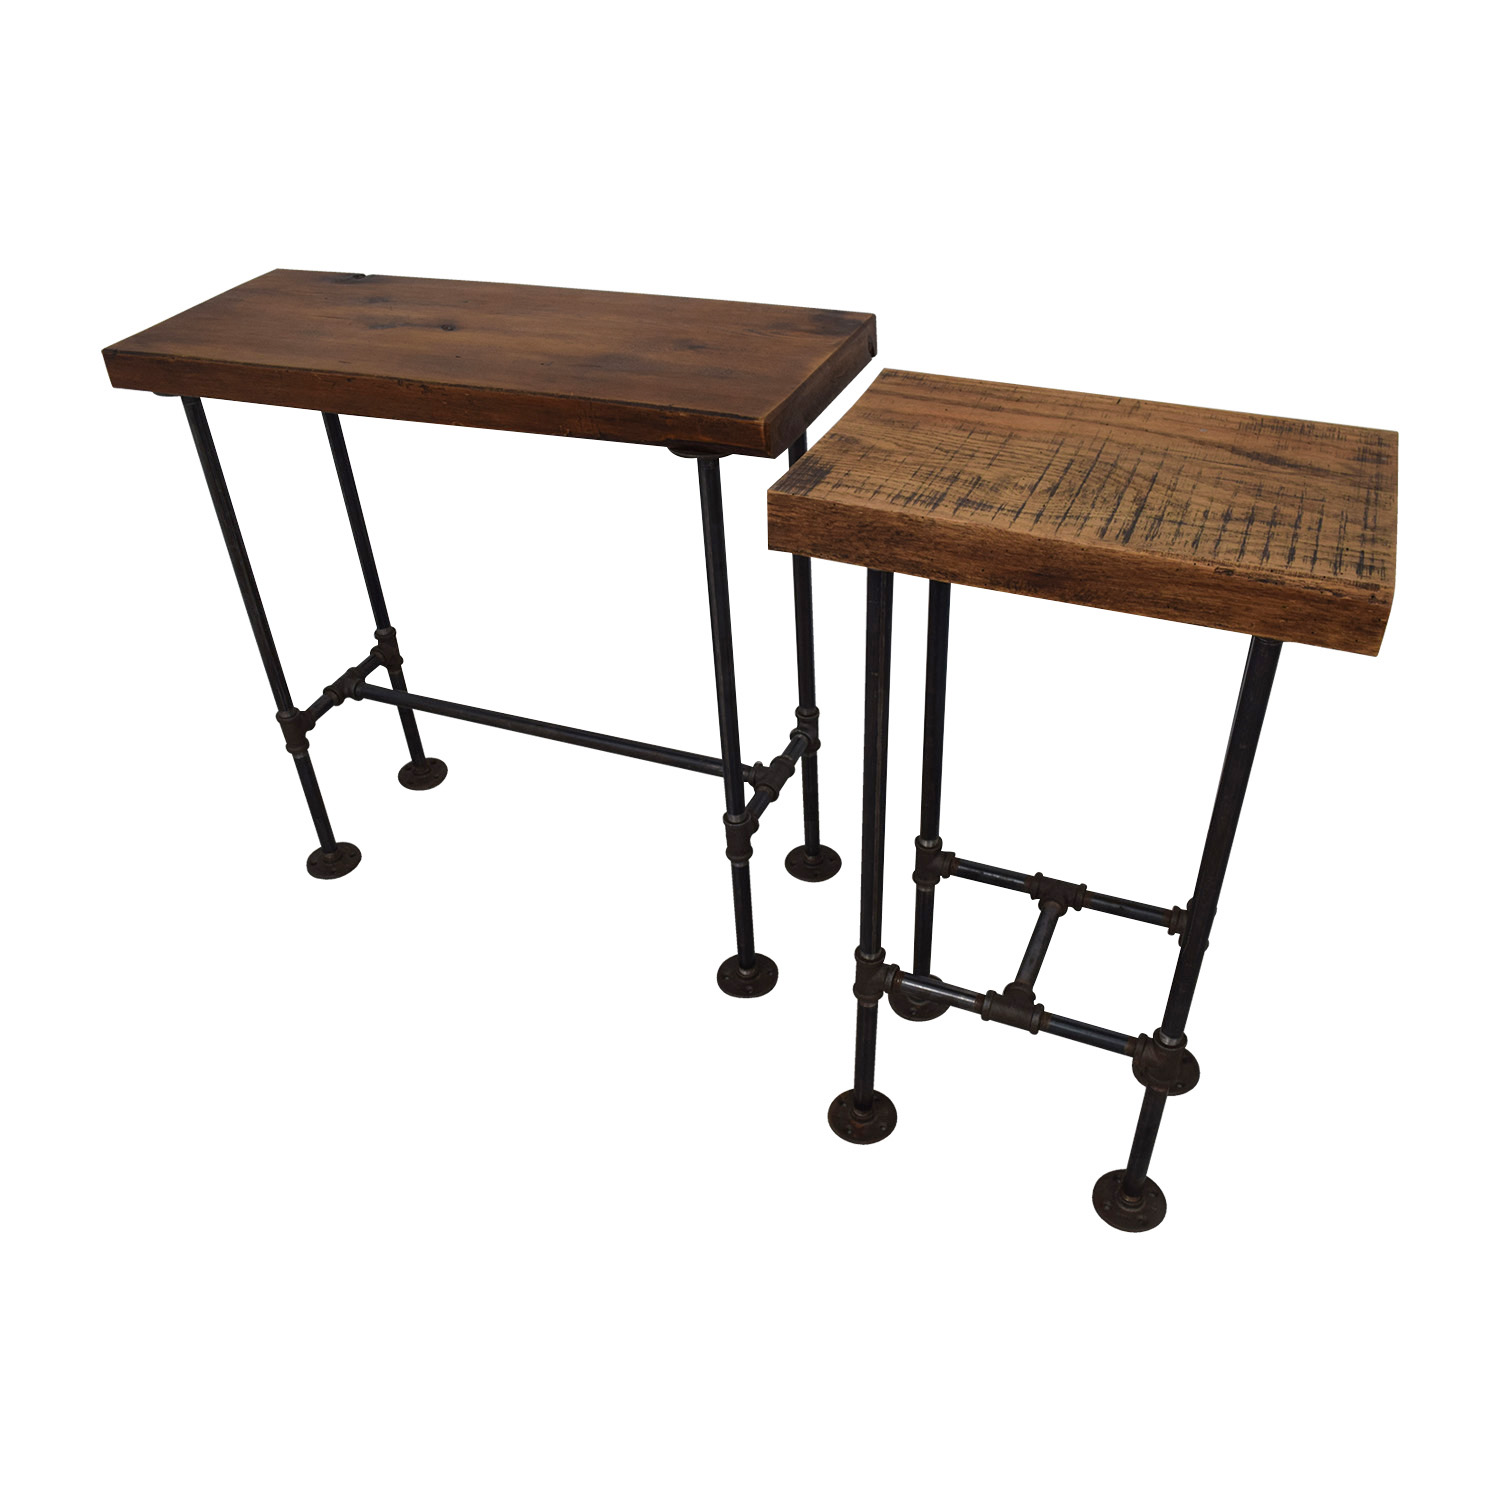 A Little of India A Little of India Industrial Reclaimed Wood Counter Table and Stools on sale